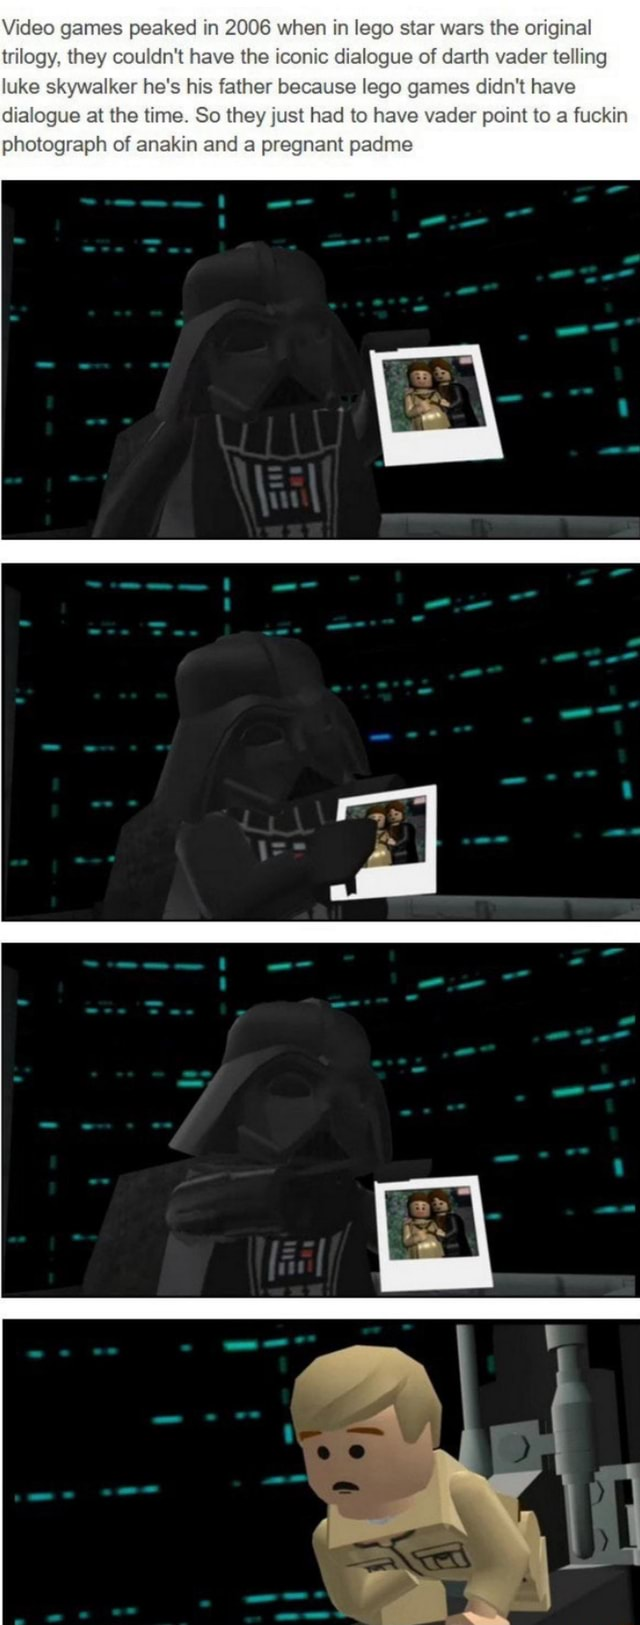 Games peaked in 2006 when in lego star wars the original trilogy, they couldn't have the iconic dialogue of darth vader telling luke skywalker he's his father because lego games didn't have dialogue at the time. So they just had to have vader point to a fuckin photograph of anakin and a pregnant padme memes